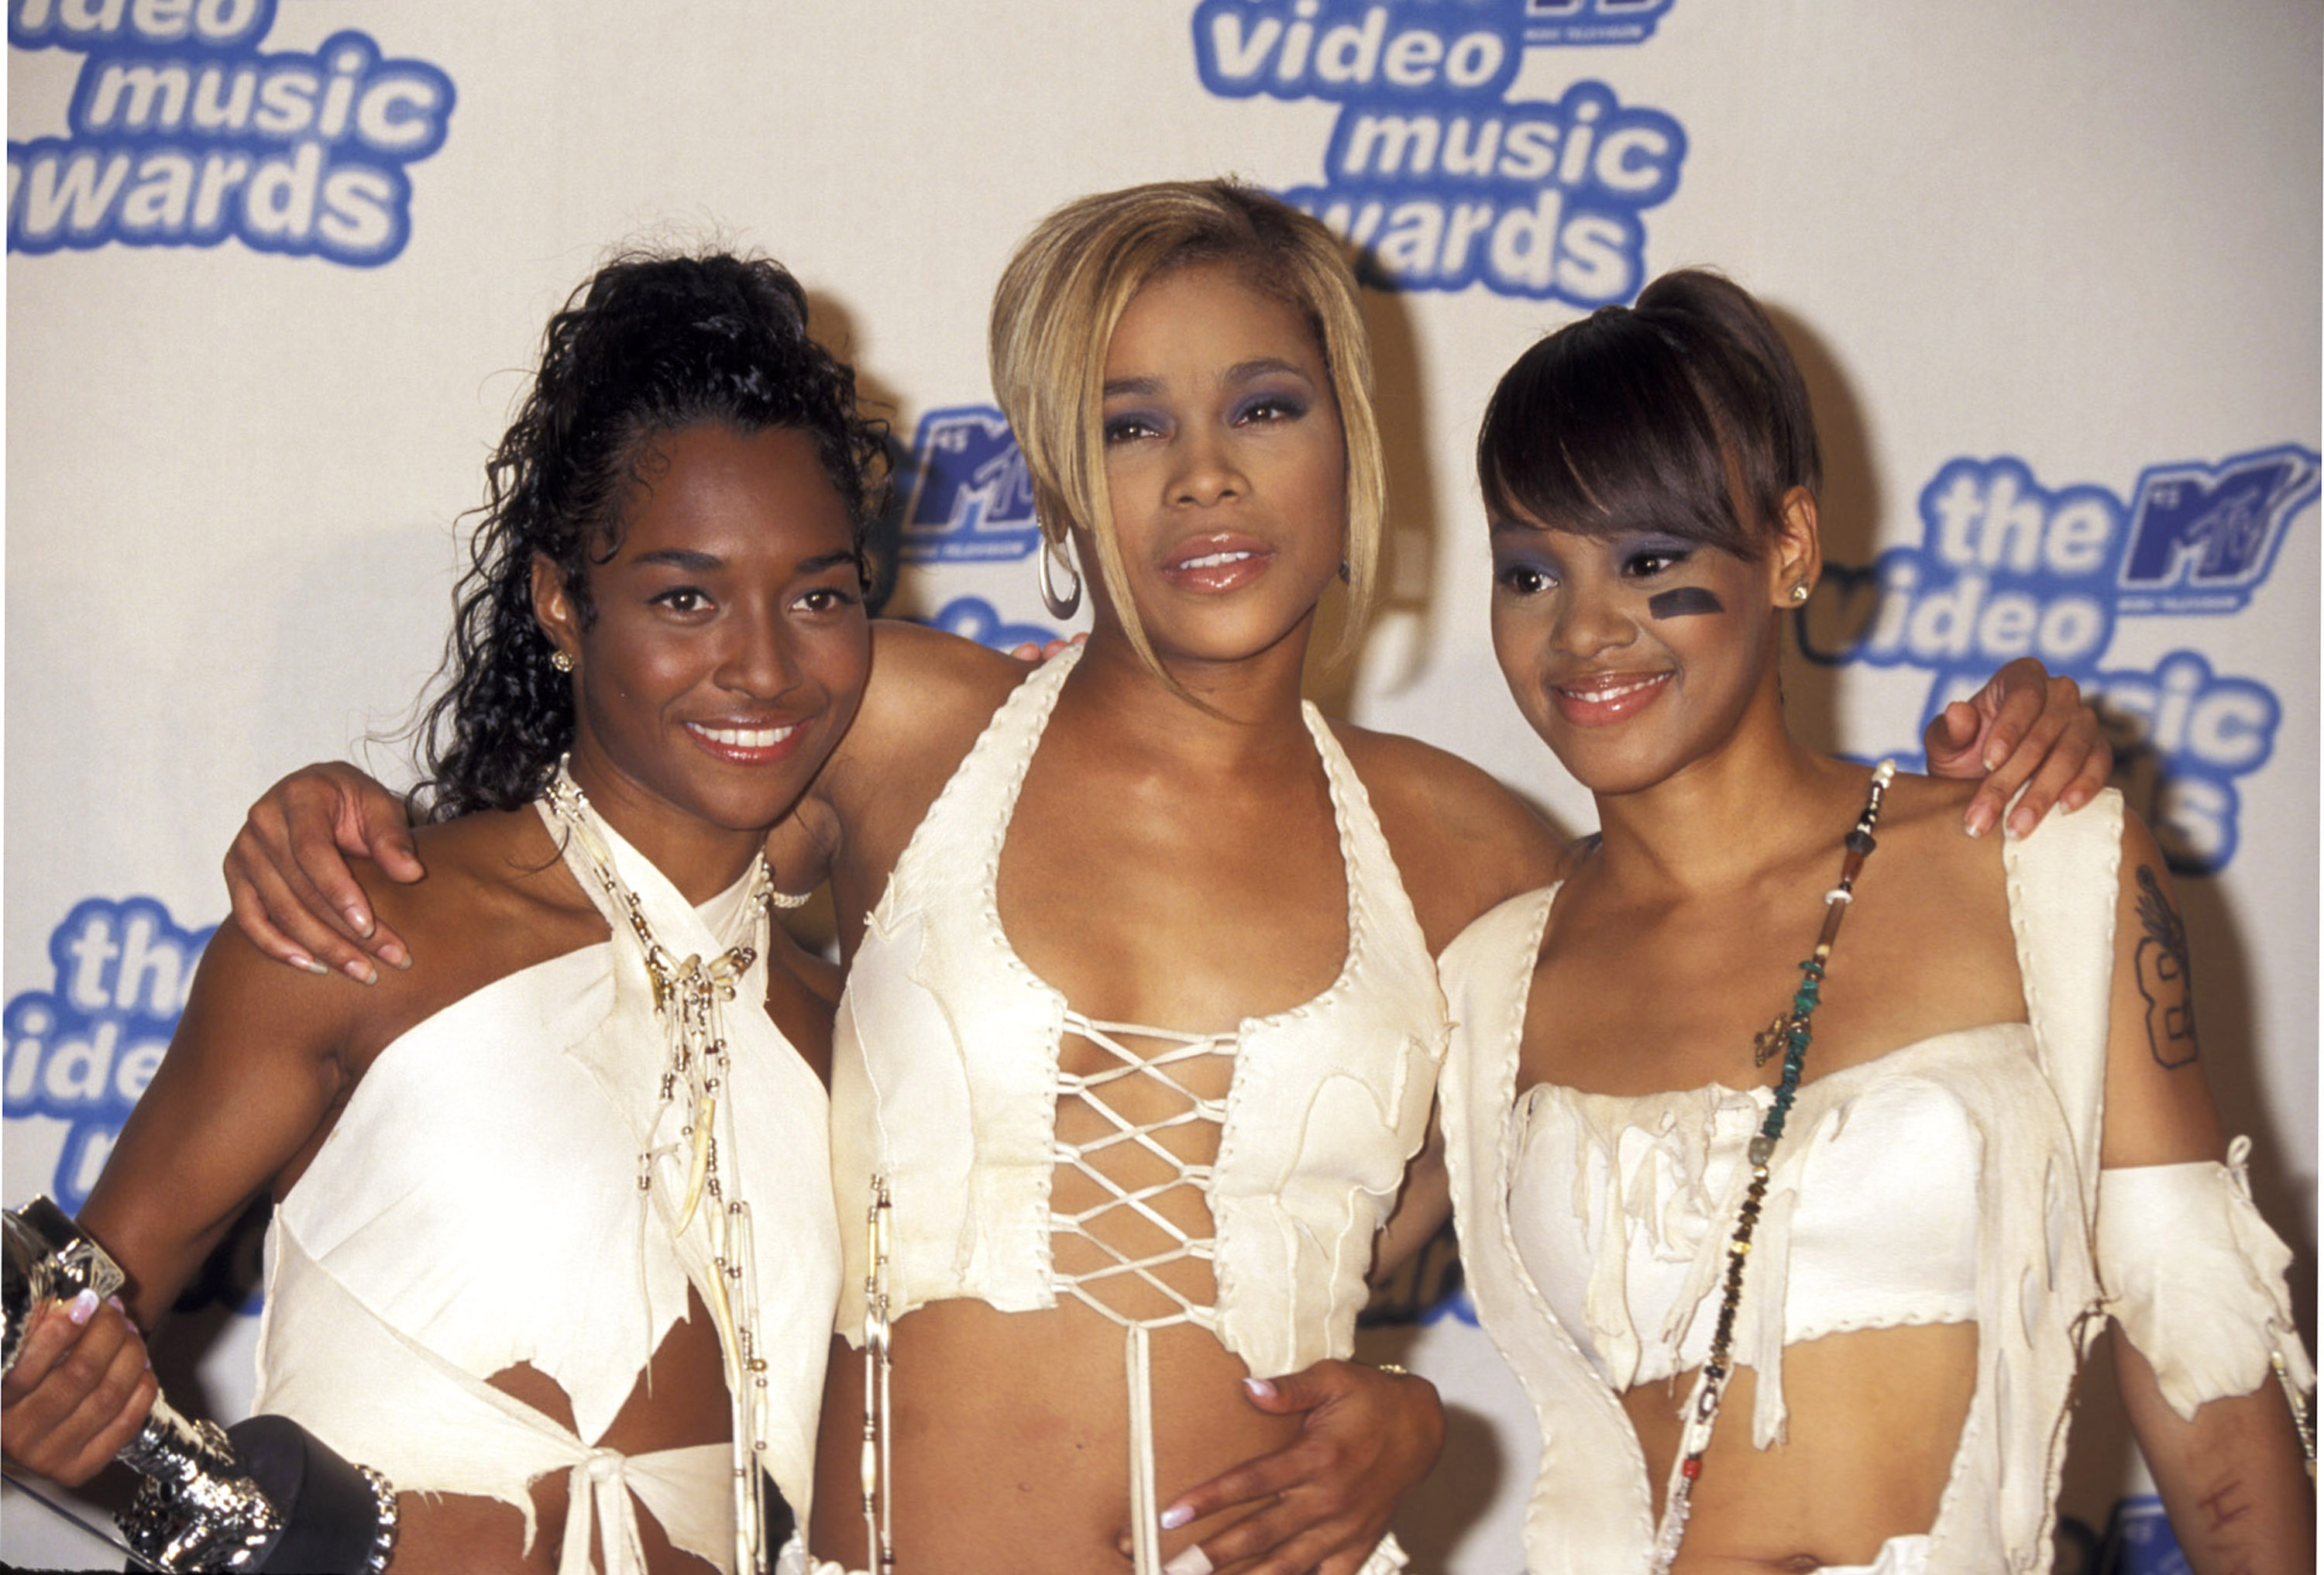 The 12th Annual MTV Video Music Awards